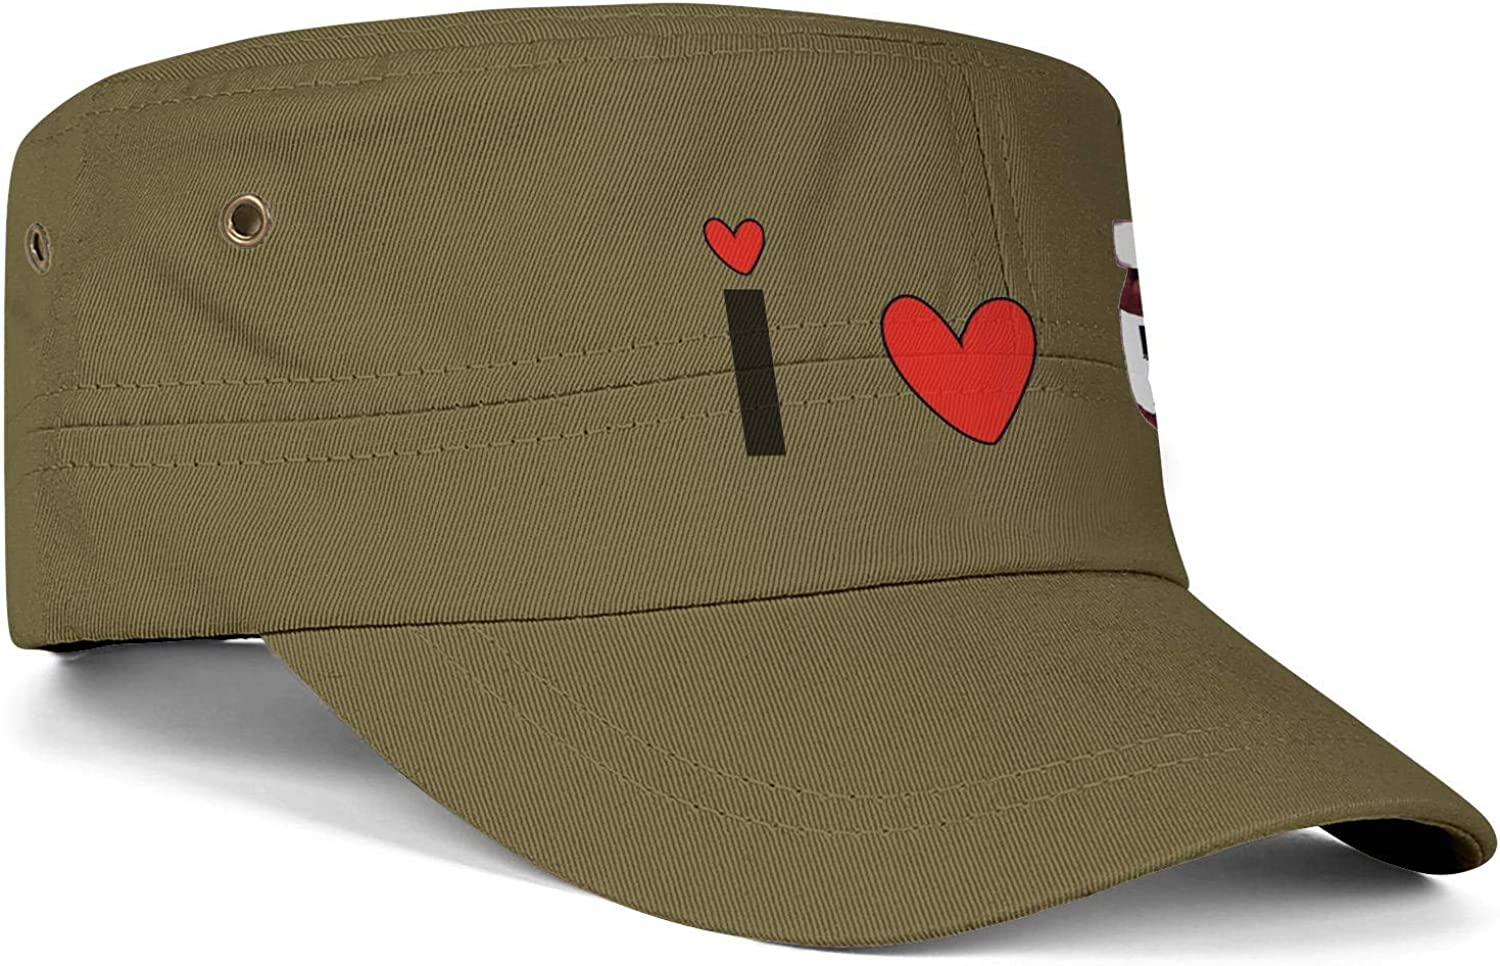 Unisex Military Hat Helicopter Cartoon Vintage Flat Top Cadet Army Caps